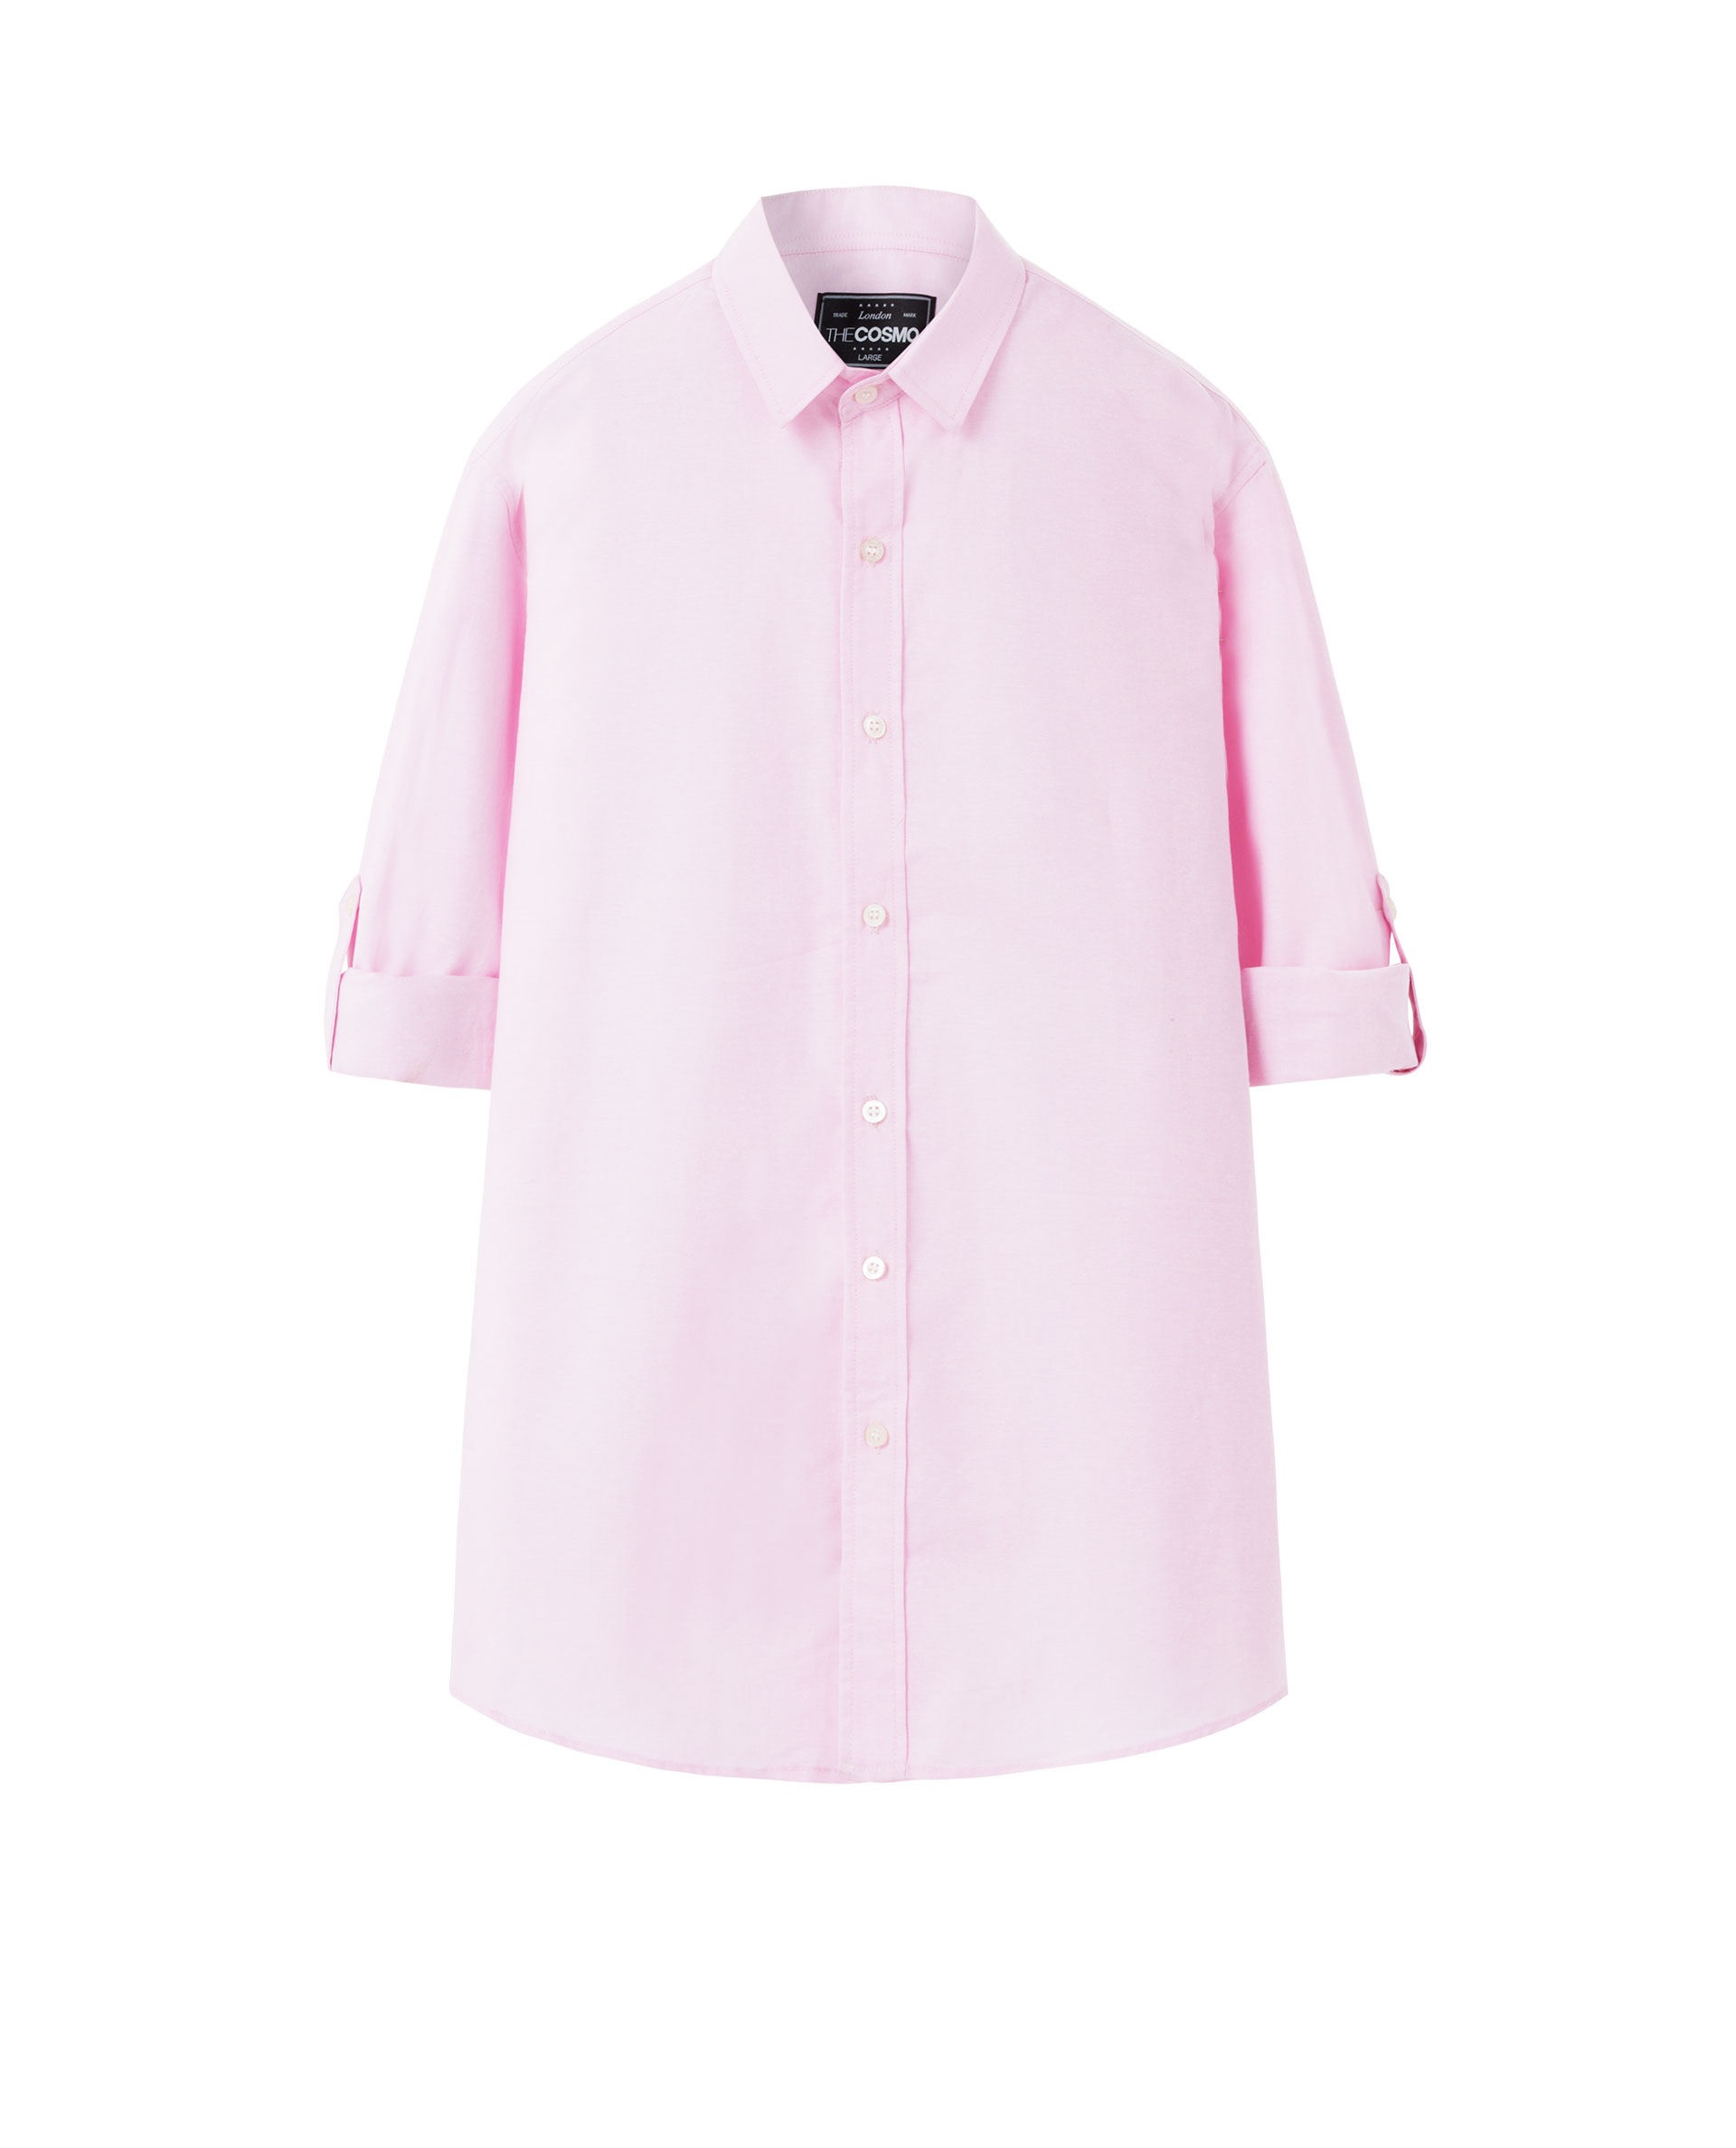 ROLL UP SHIRT (PINK)